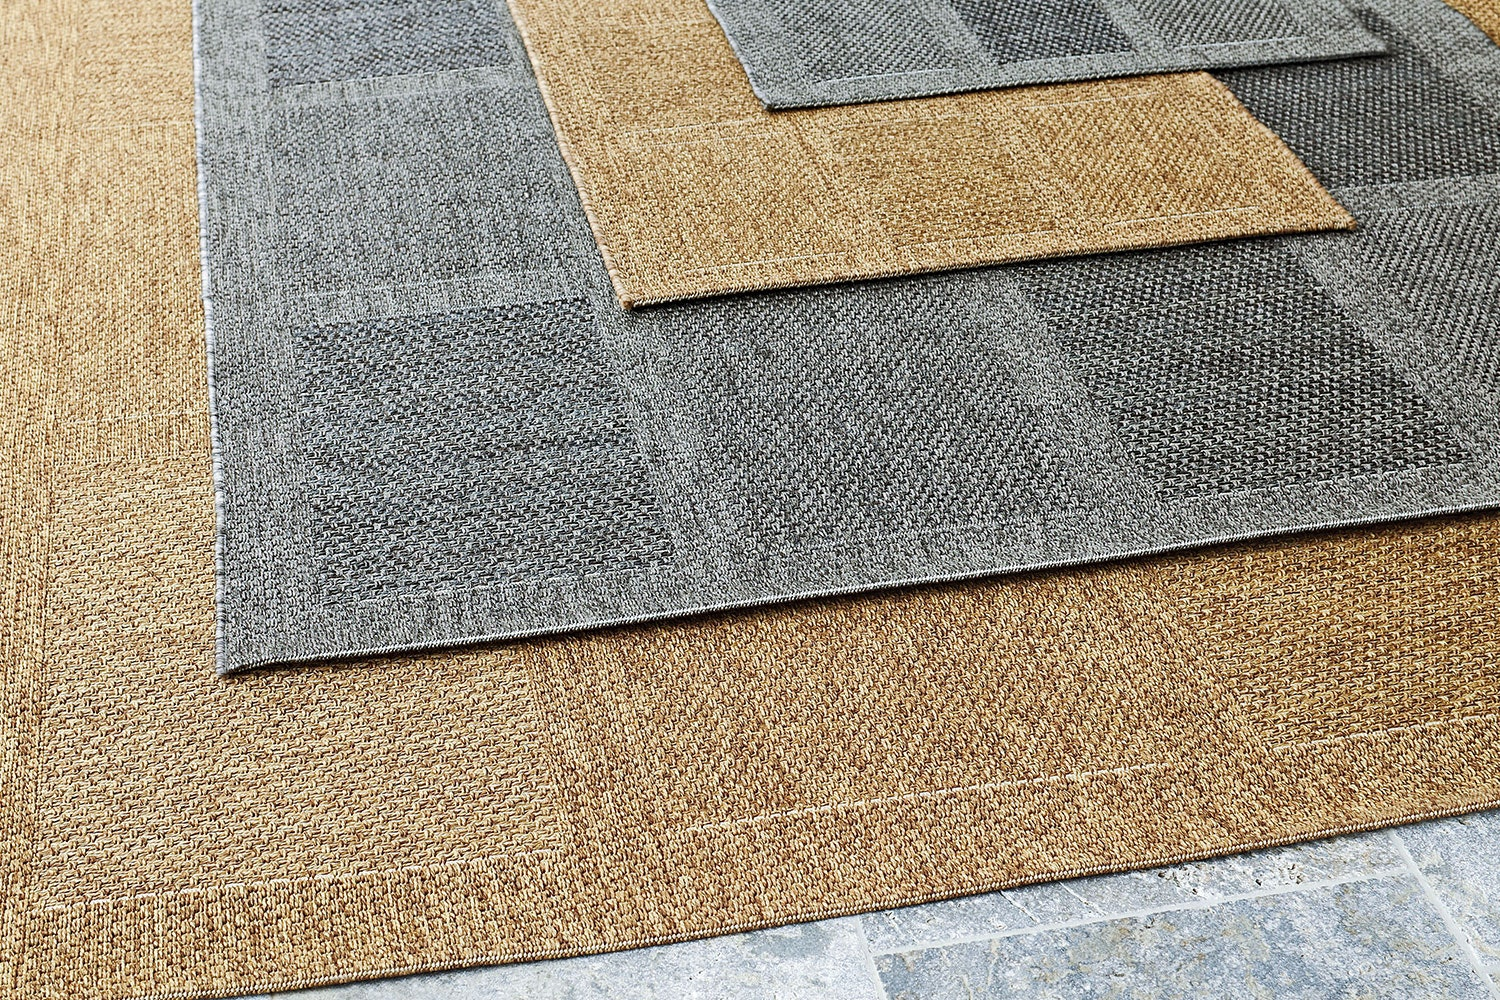 Outdoor Rugs 160 x 230cm by Rug Traders